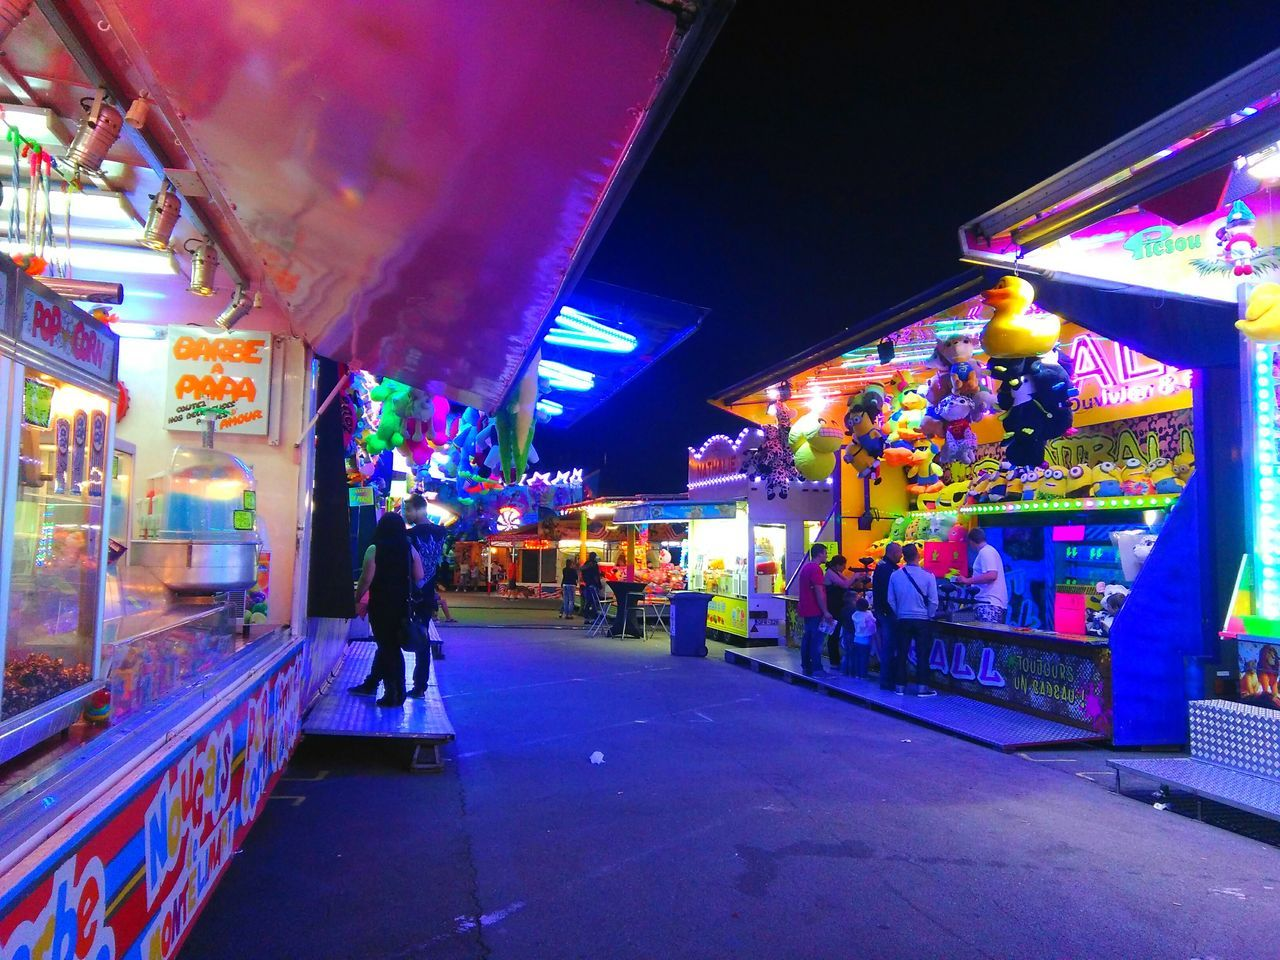 illuminated, night, real people, market, men, retail, multi colored, leisure activity, lifestyles, amusement park, walking, market stall, neon, consumerism, arts culture and entertainment, city, store, outdoors, architecture, built structure, women, awning, building exterior, carousel, people